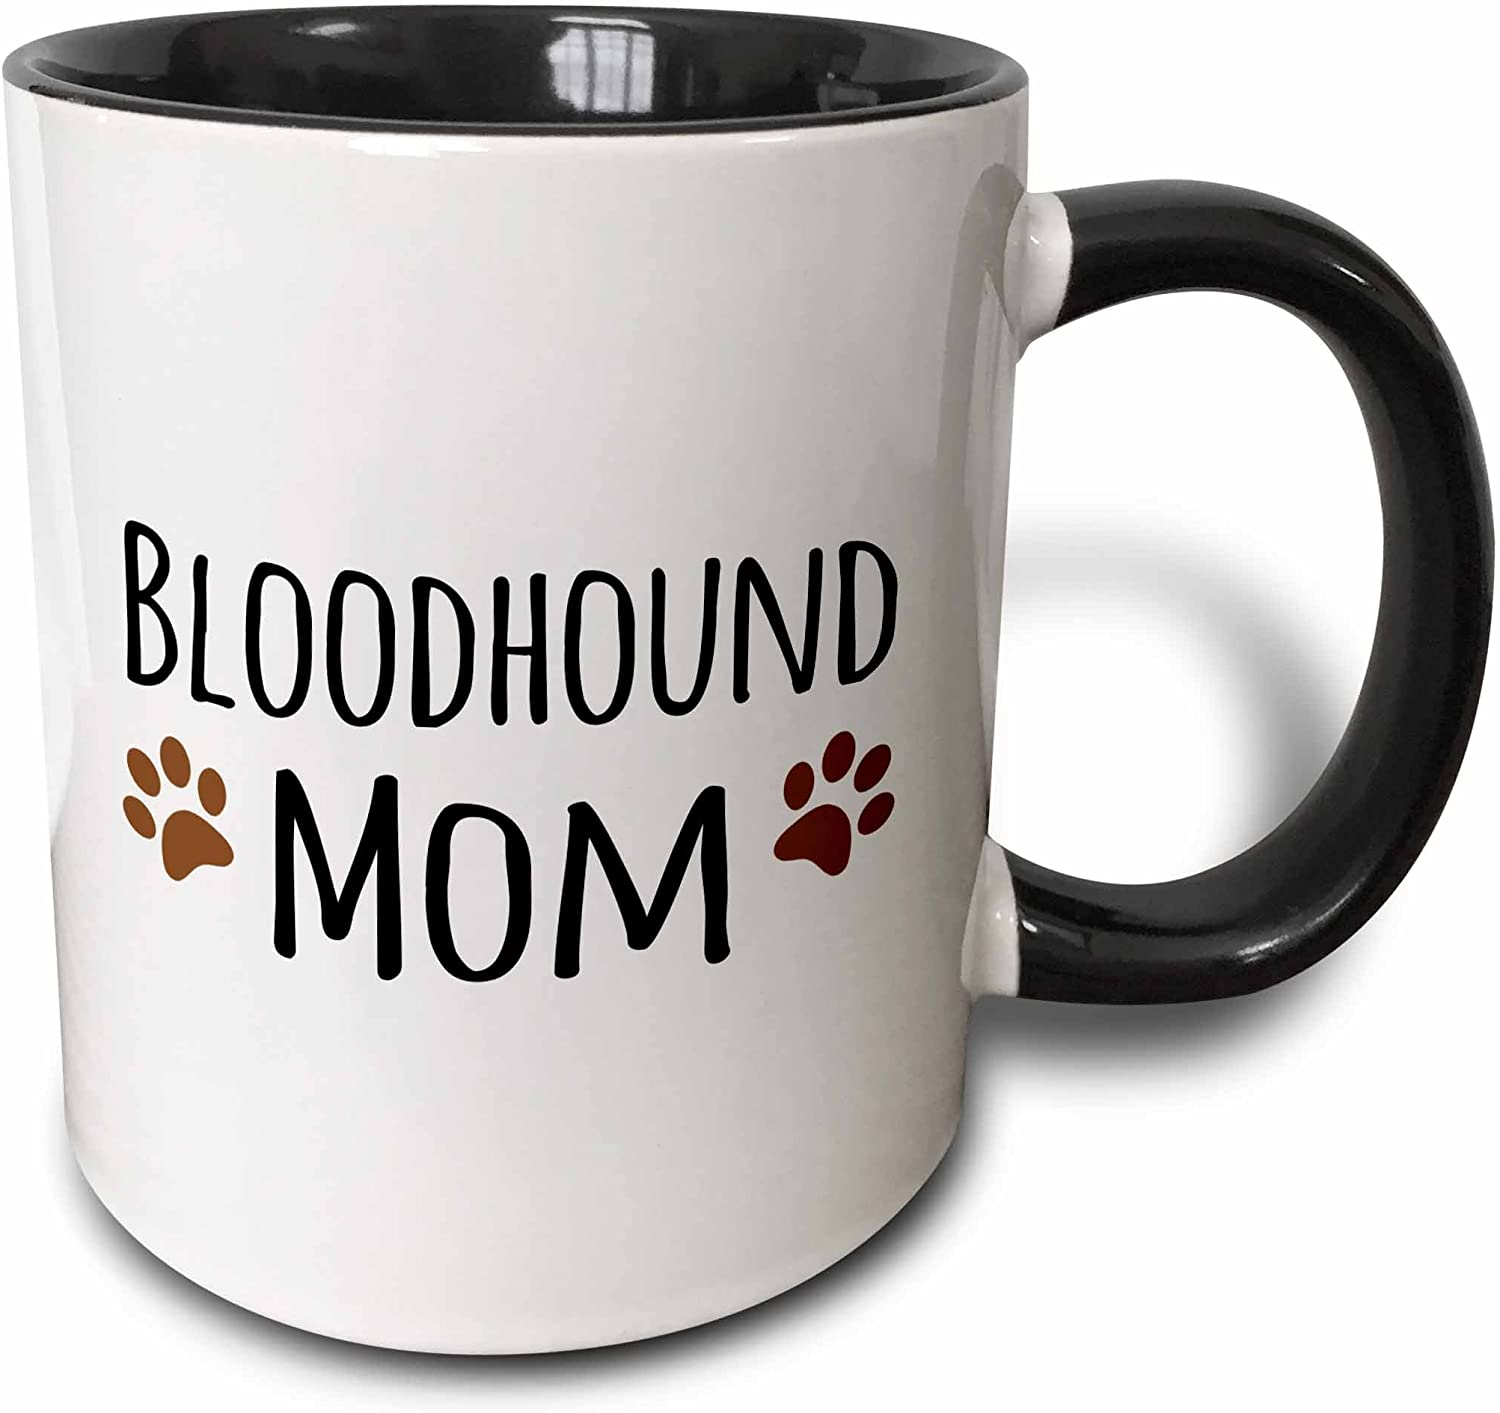 3dRose Bloodhound Dog Mom-Doggie by breed-brown muddy paw prints Mug, 11 oz, Black